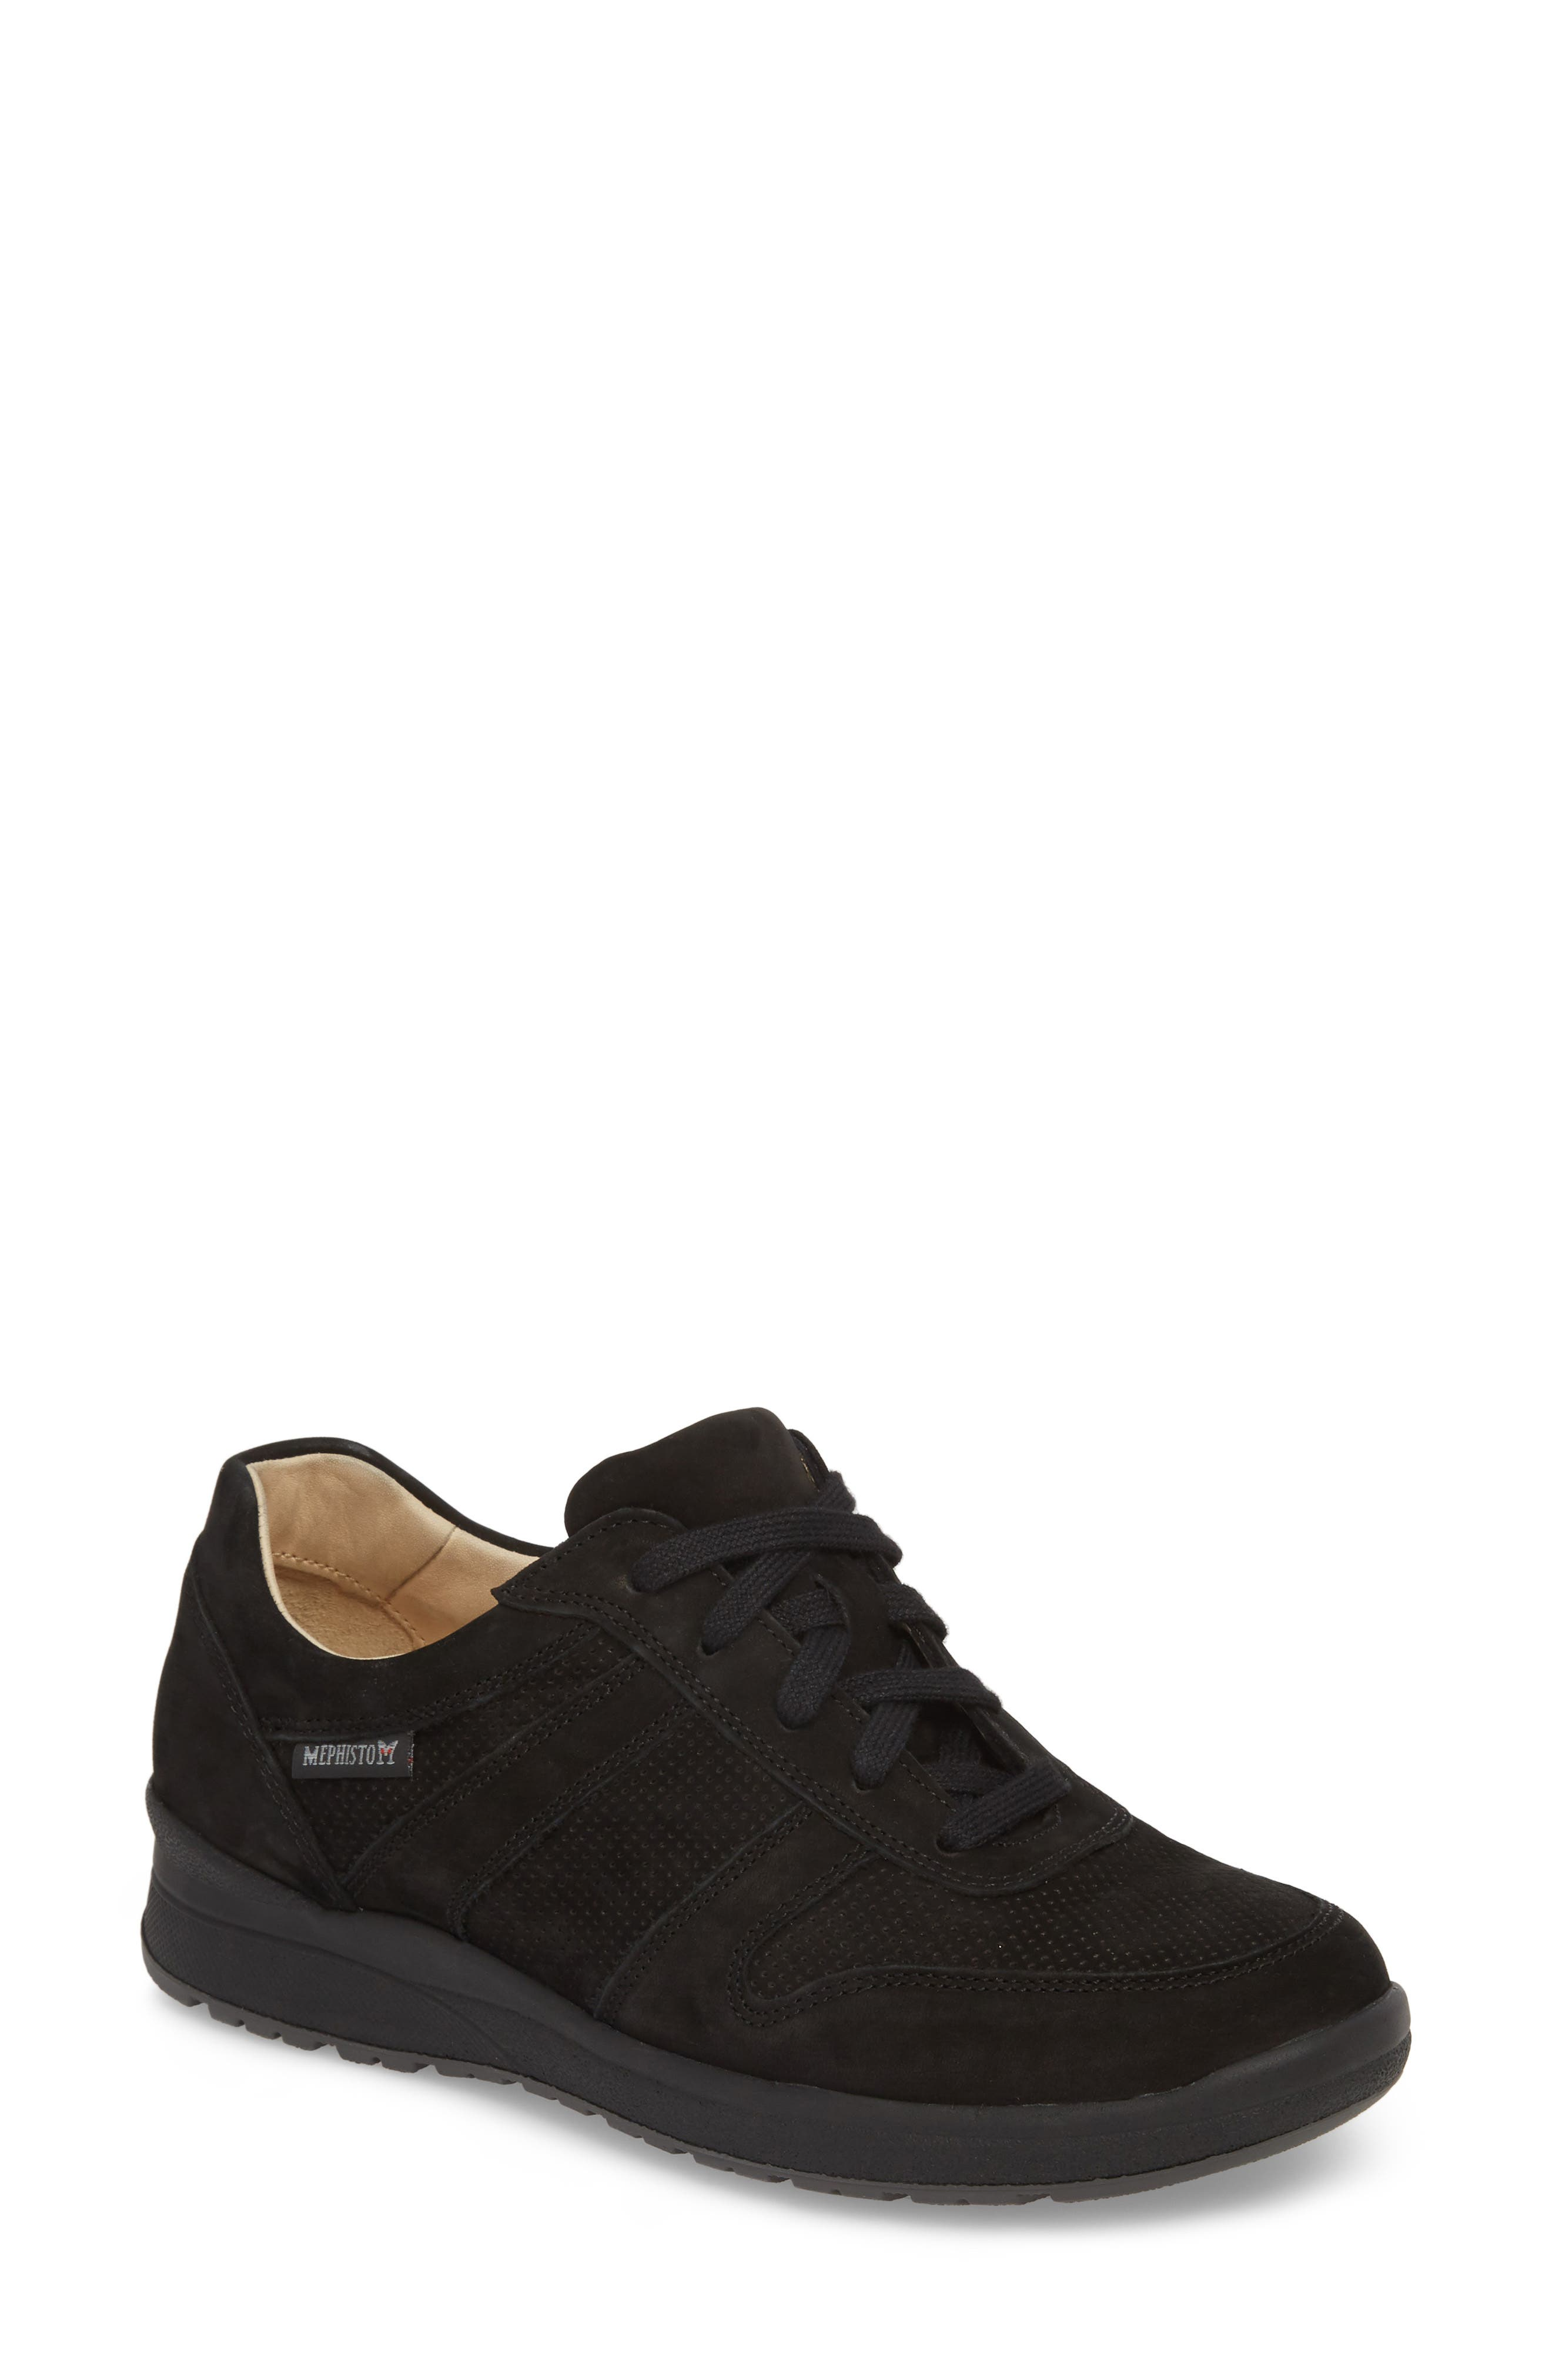 MEPHISTO, Rebecca Perforated Sneaker, Main thumbnail 1, color, 002